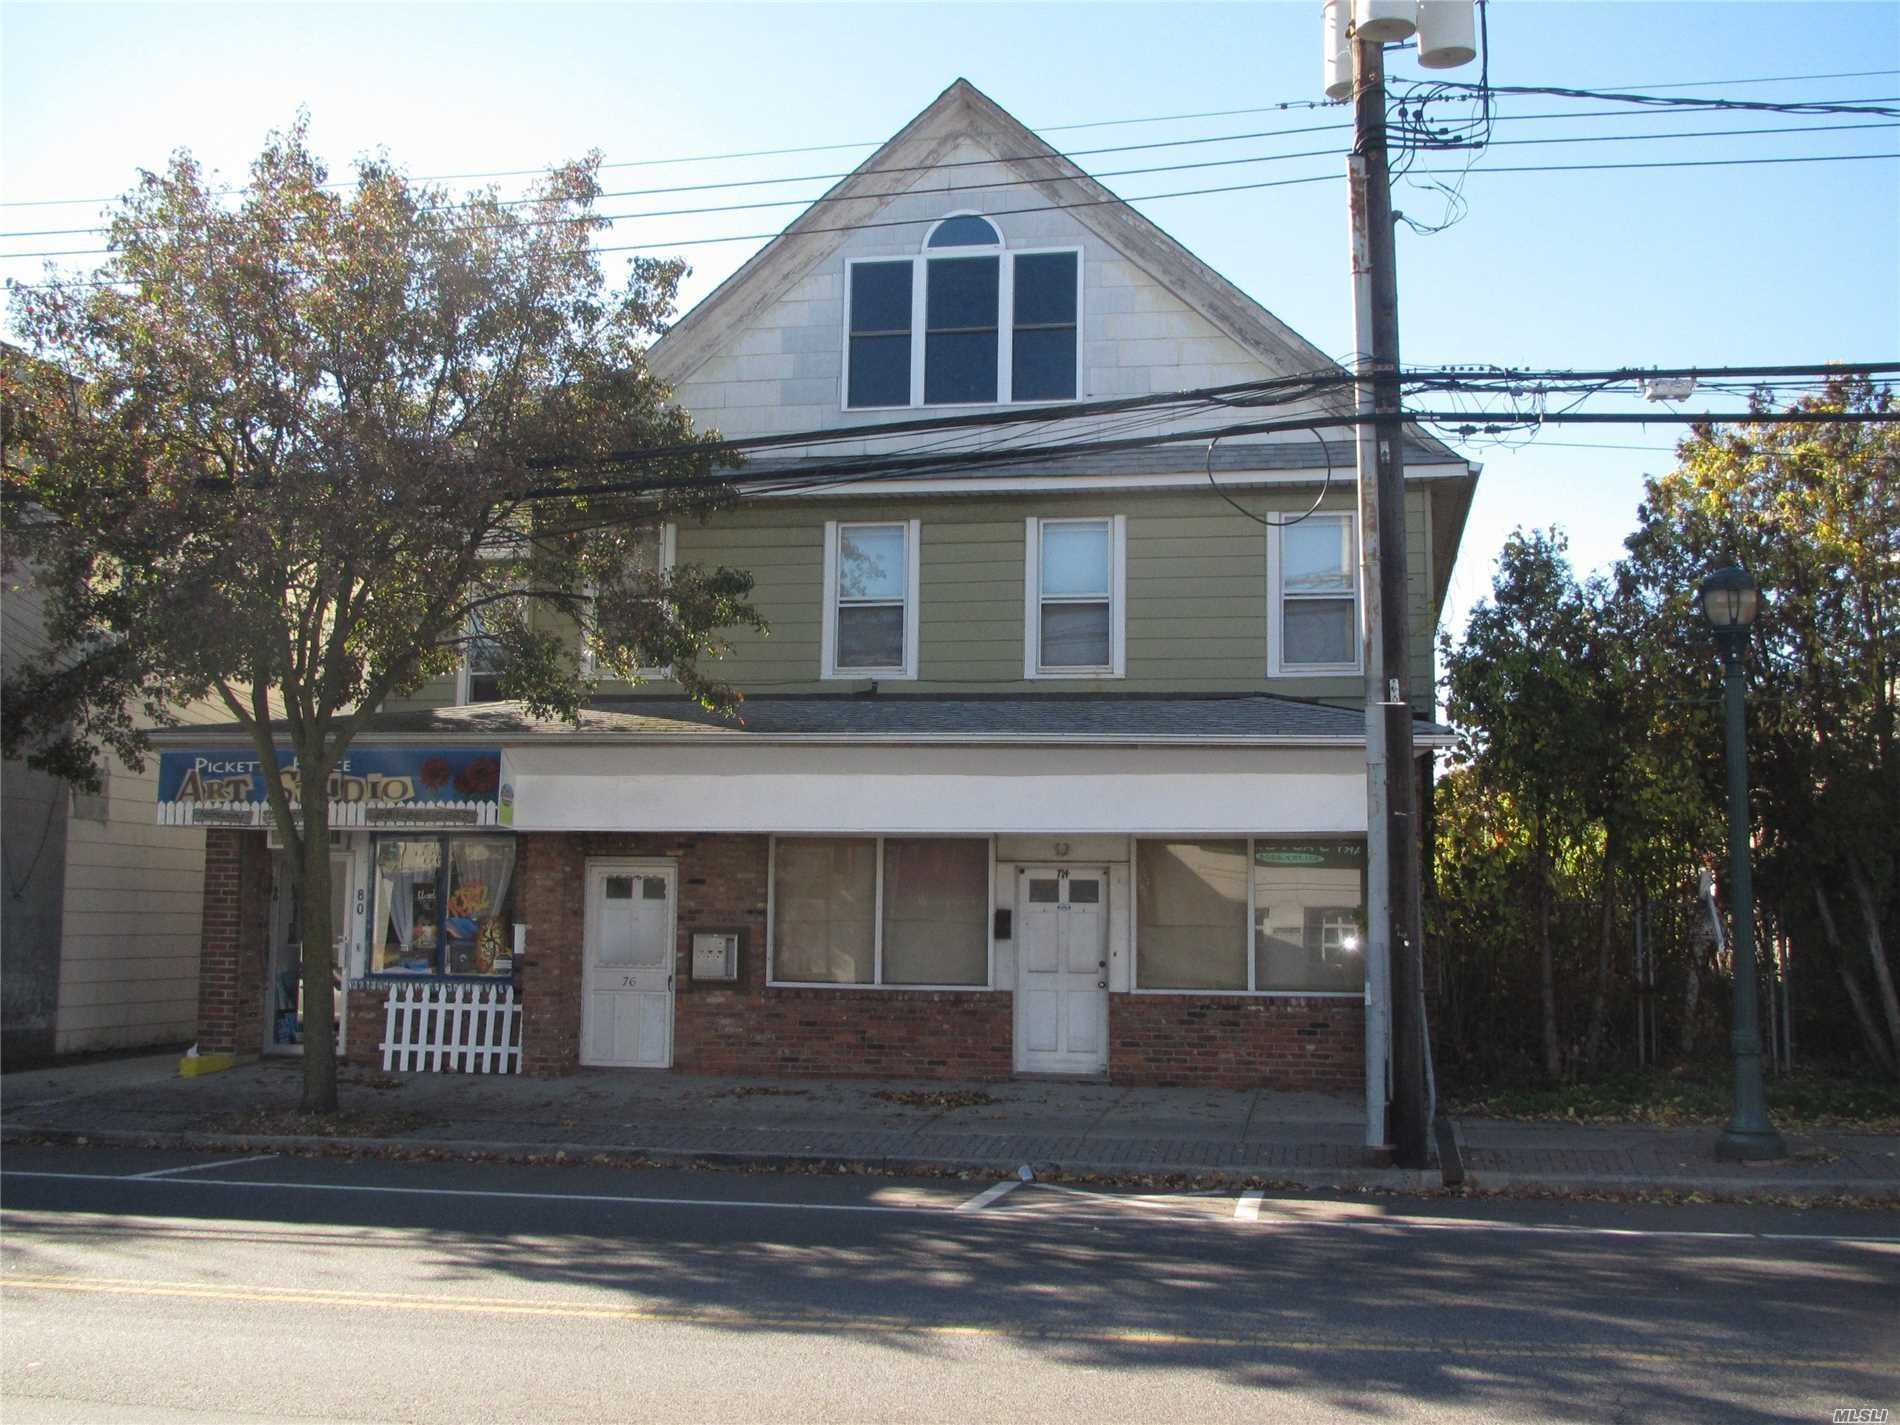 74-80 Larkfield Rd - E. Northport, New York